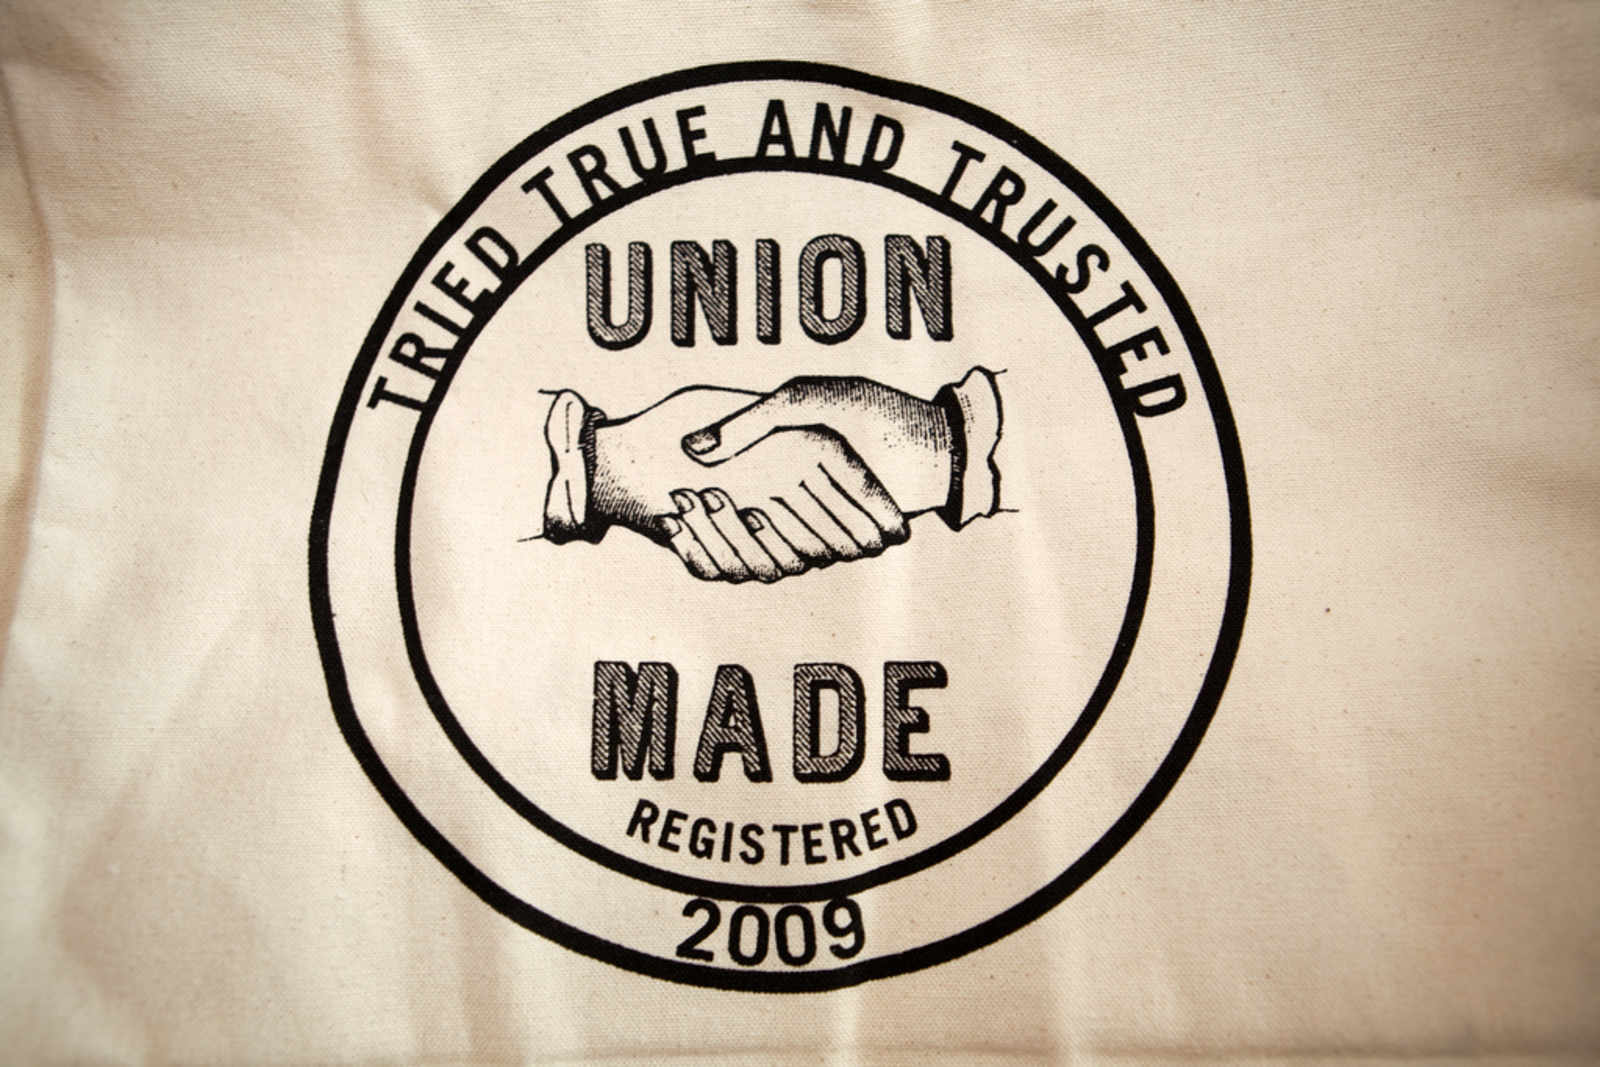 Afl cio slaps phony unionmade clothing store with cease and desist afl cio slaps phony unionmade clothing store with cease and desist thecheapjerseys Image collections